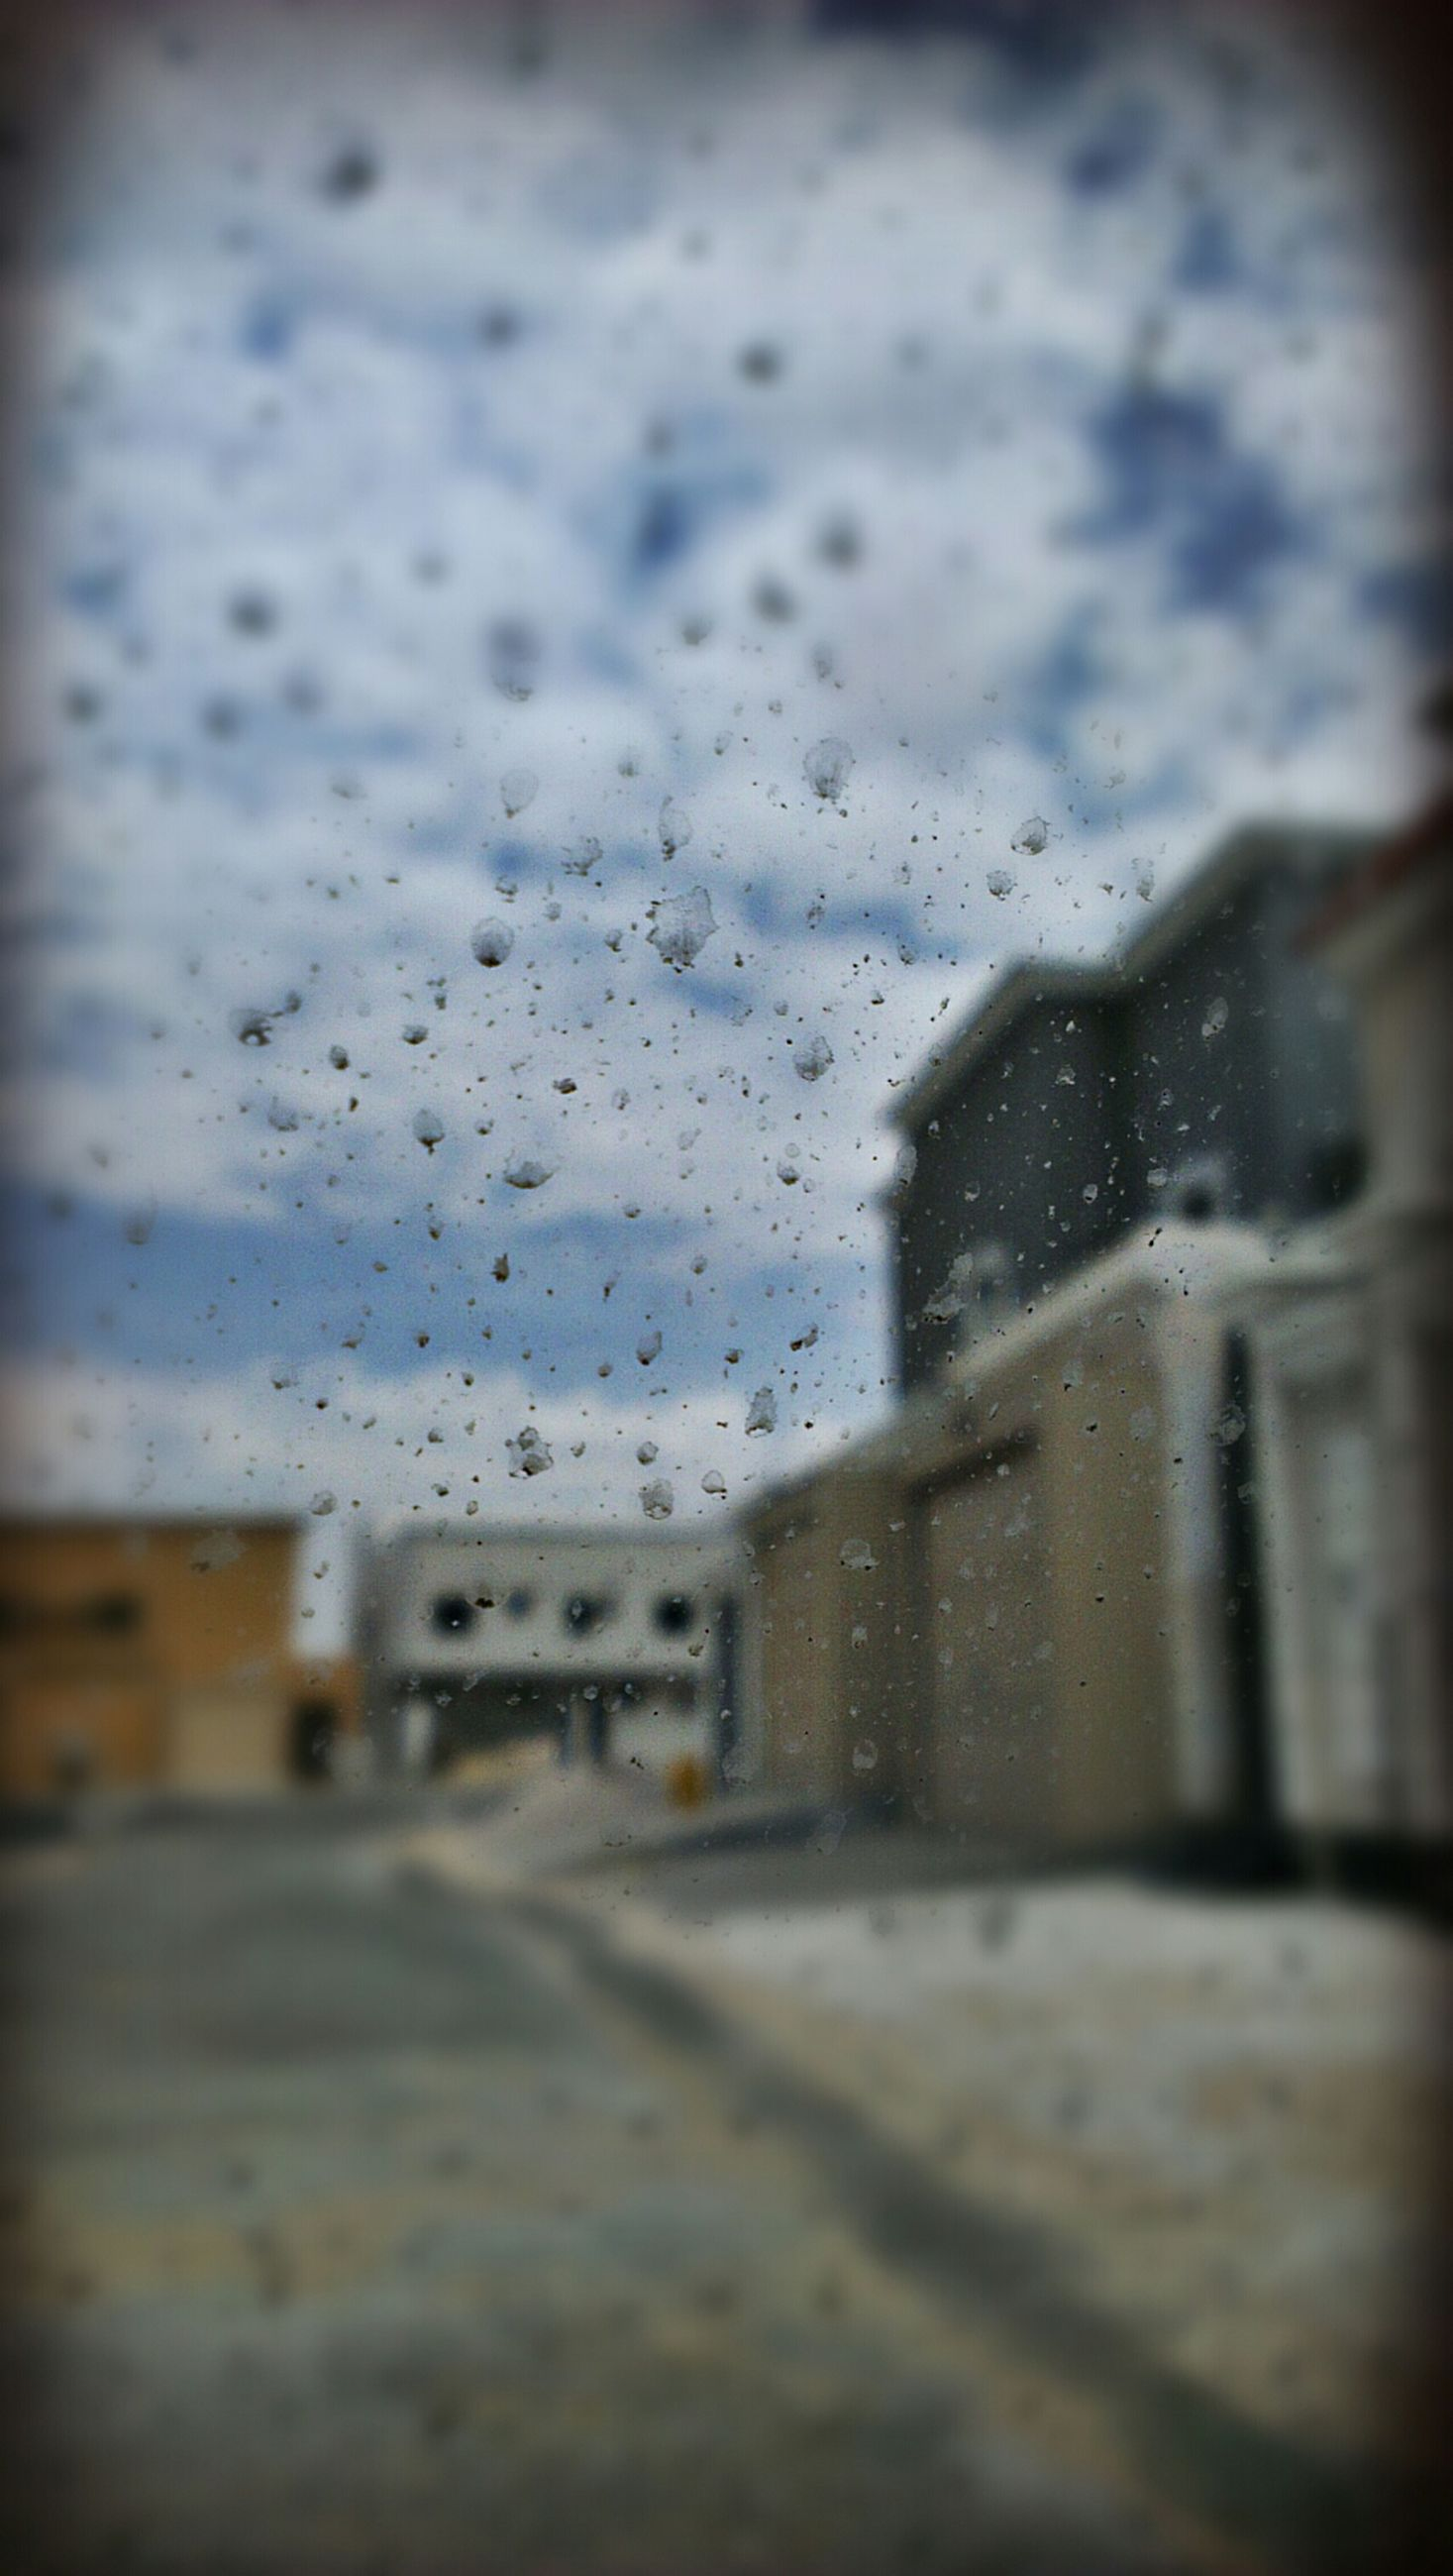 transportation, selective focus, wet, street, road, focus on foreground, sky, window, rain, car, weather, drop, surface level, land vehicle, mode of transport, water, glass - material, transparent, day, outdoors